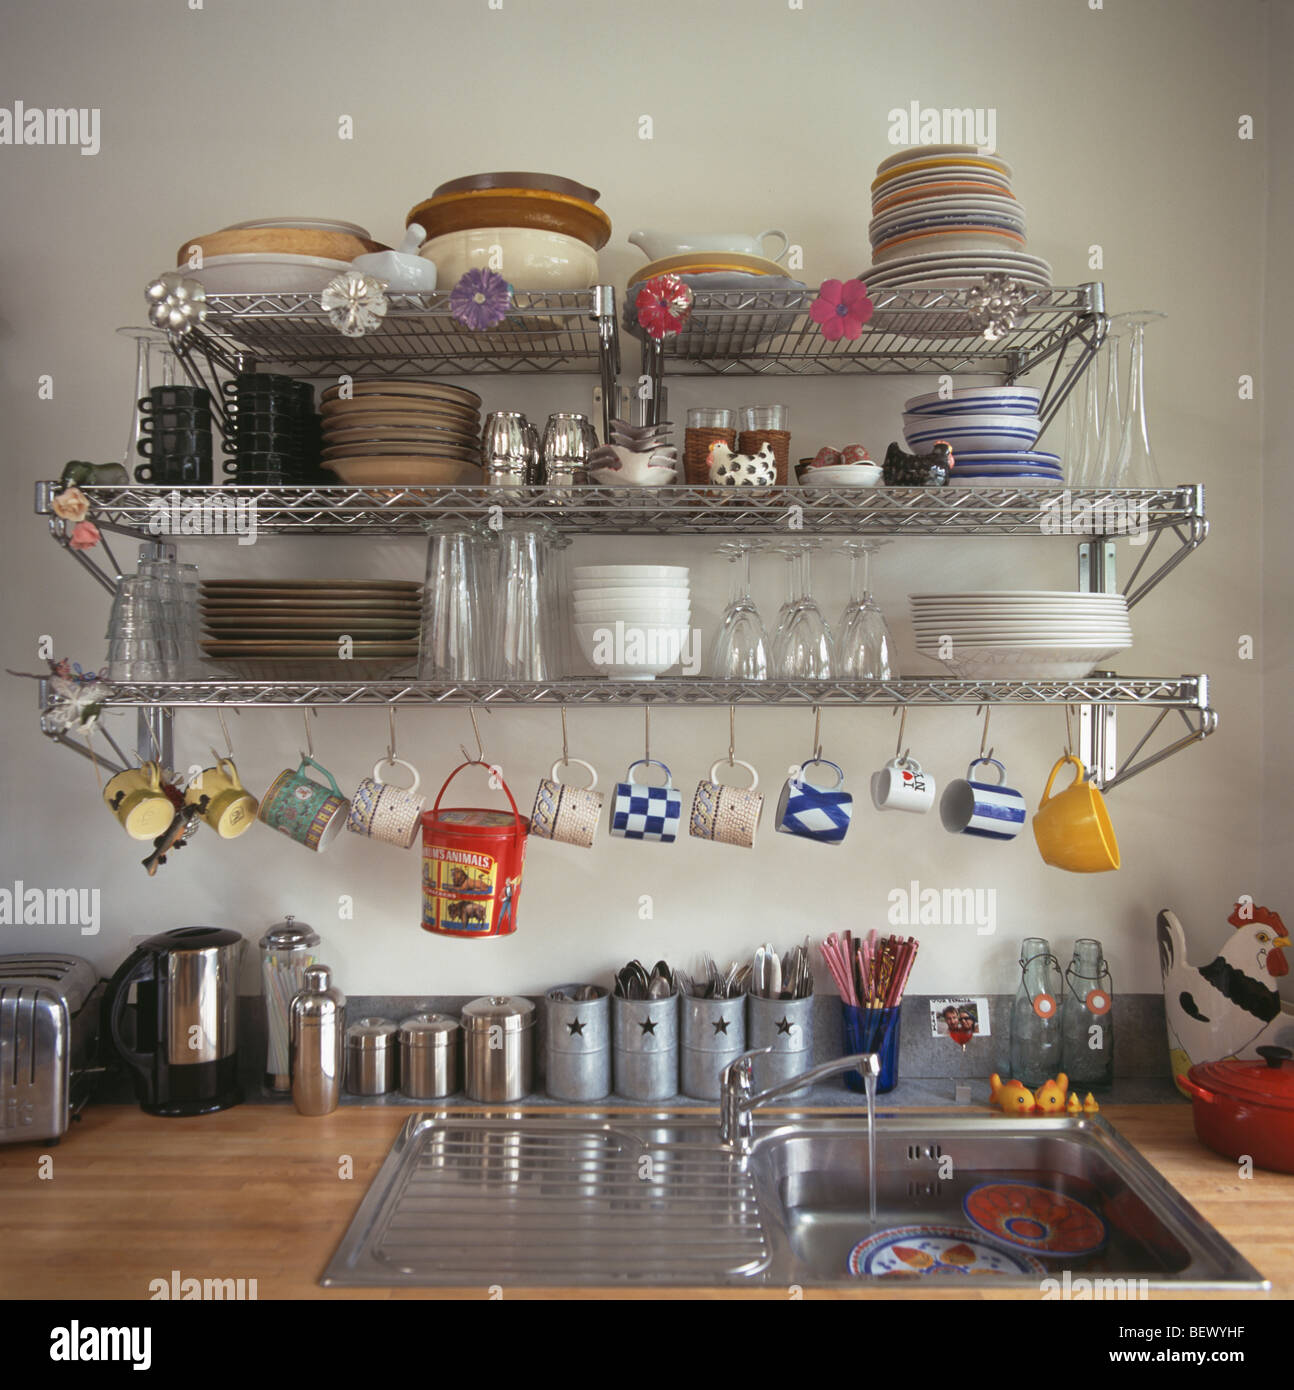 Crockery and pans on stainless steel storage shelves above stainless steel kitchen sink & Crockery and pans on stainless steel storage shelves above stainless ...